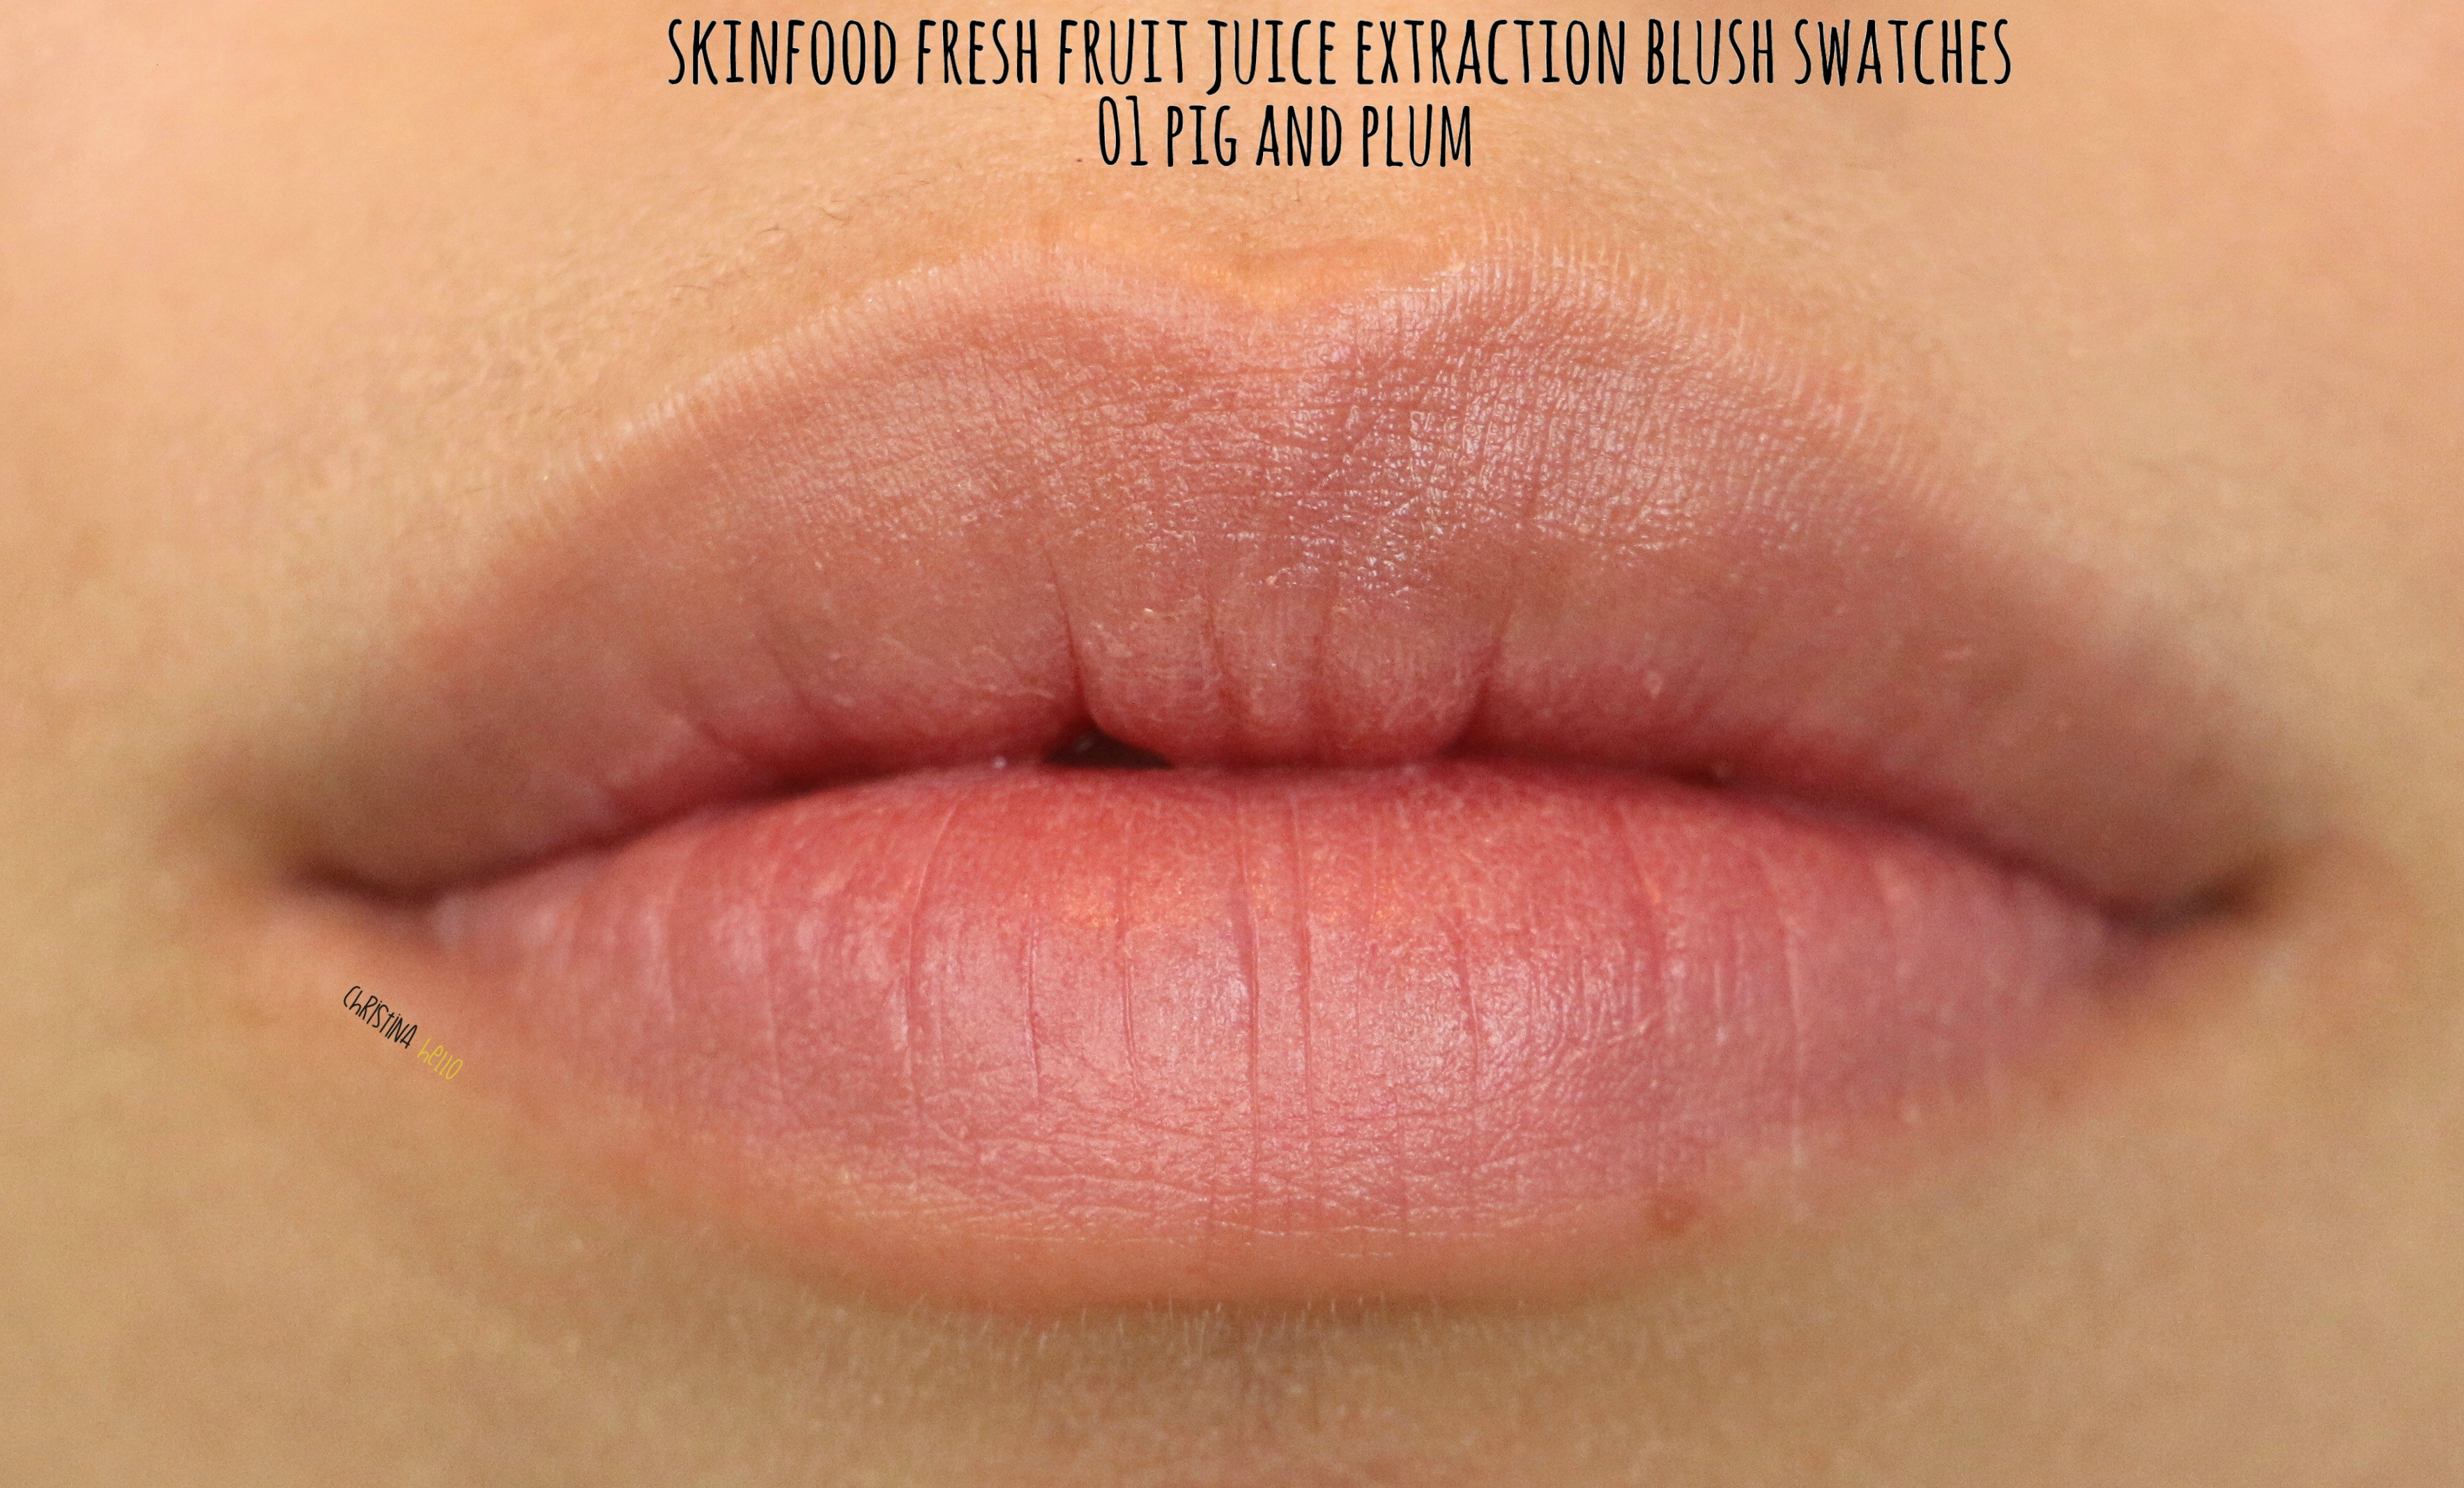 Skinfood Fresh Fruit Juice Extraction Blush Review Swatches Christinahello